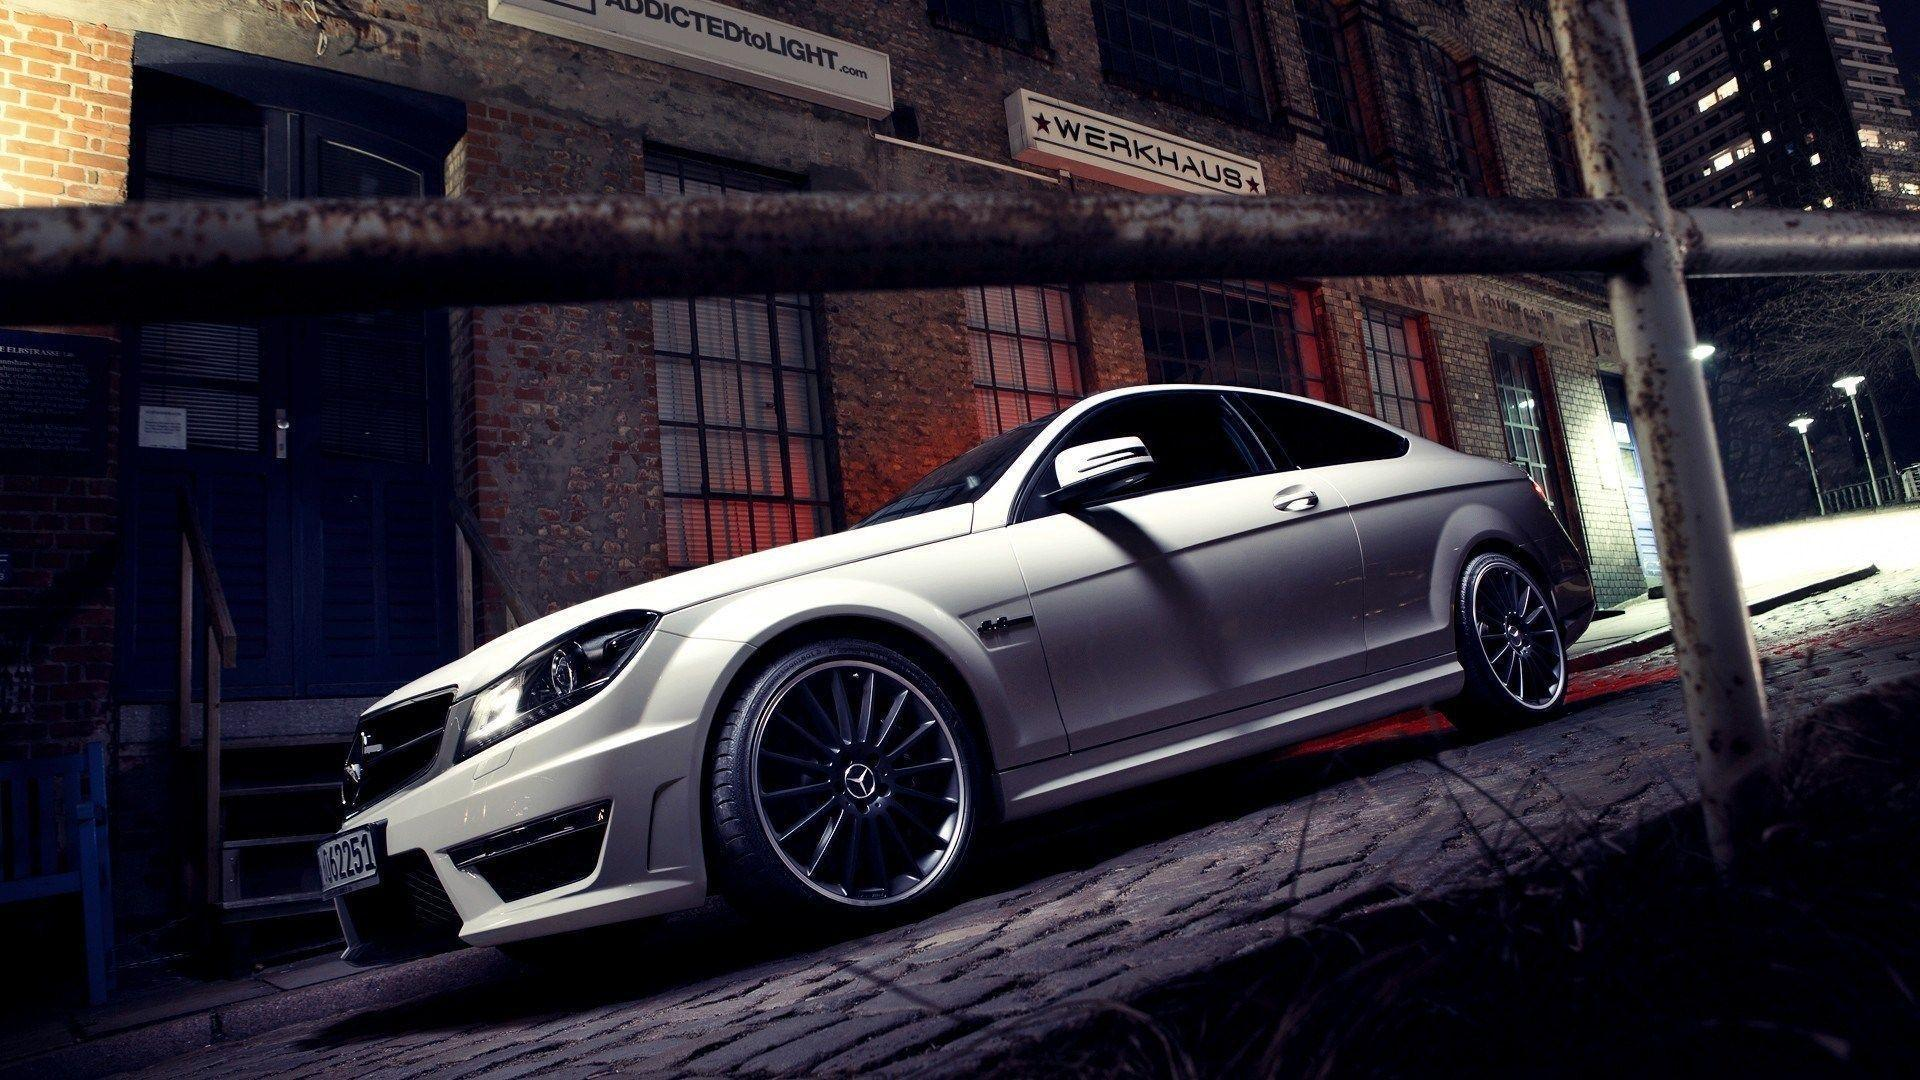 Mercedes Benz AMG Wallpapers